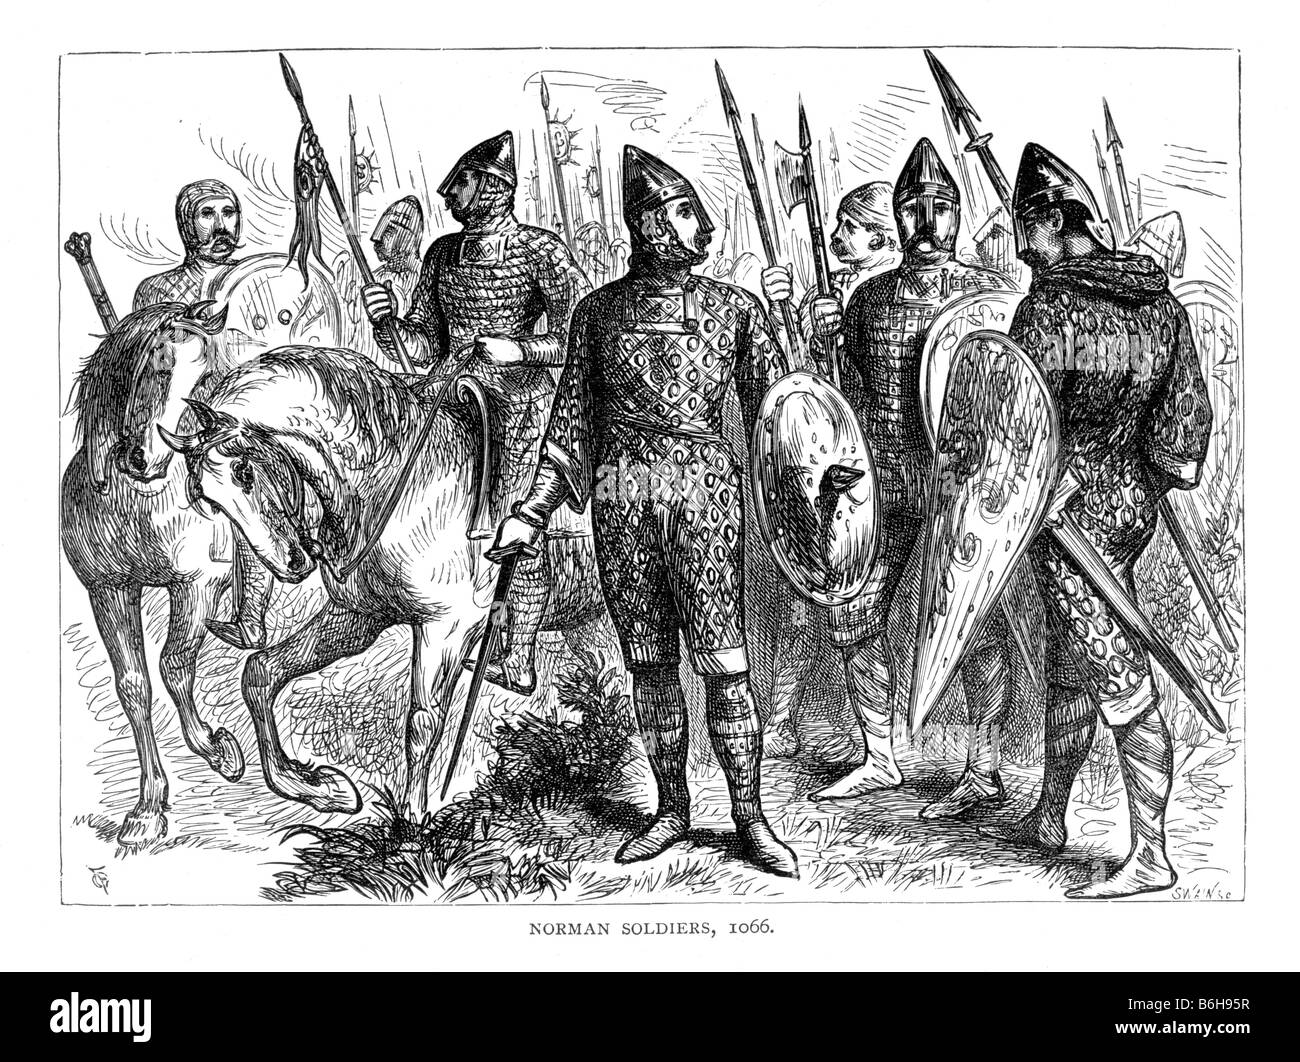 1066 Stock Photos Images Alamy Battle Story Hastings Norman Soldiers Of 19th Century Illustration Image